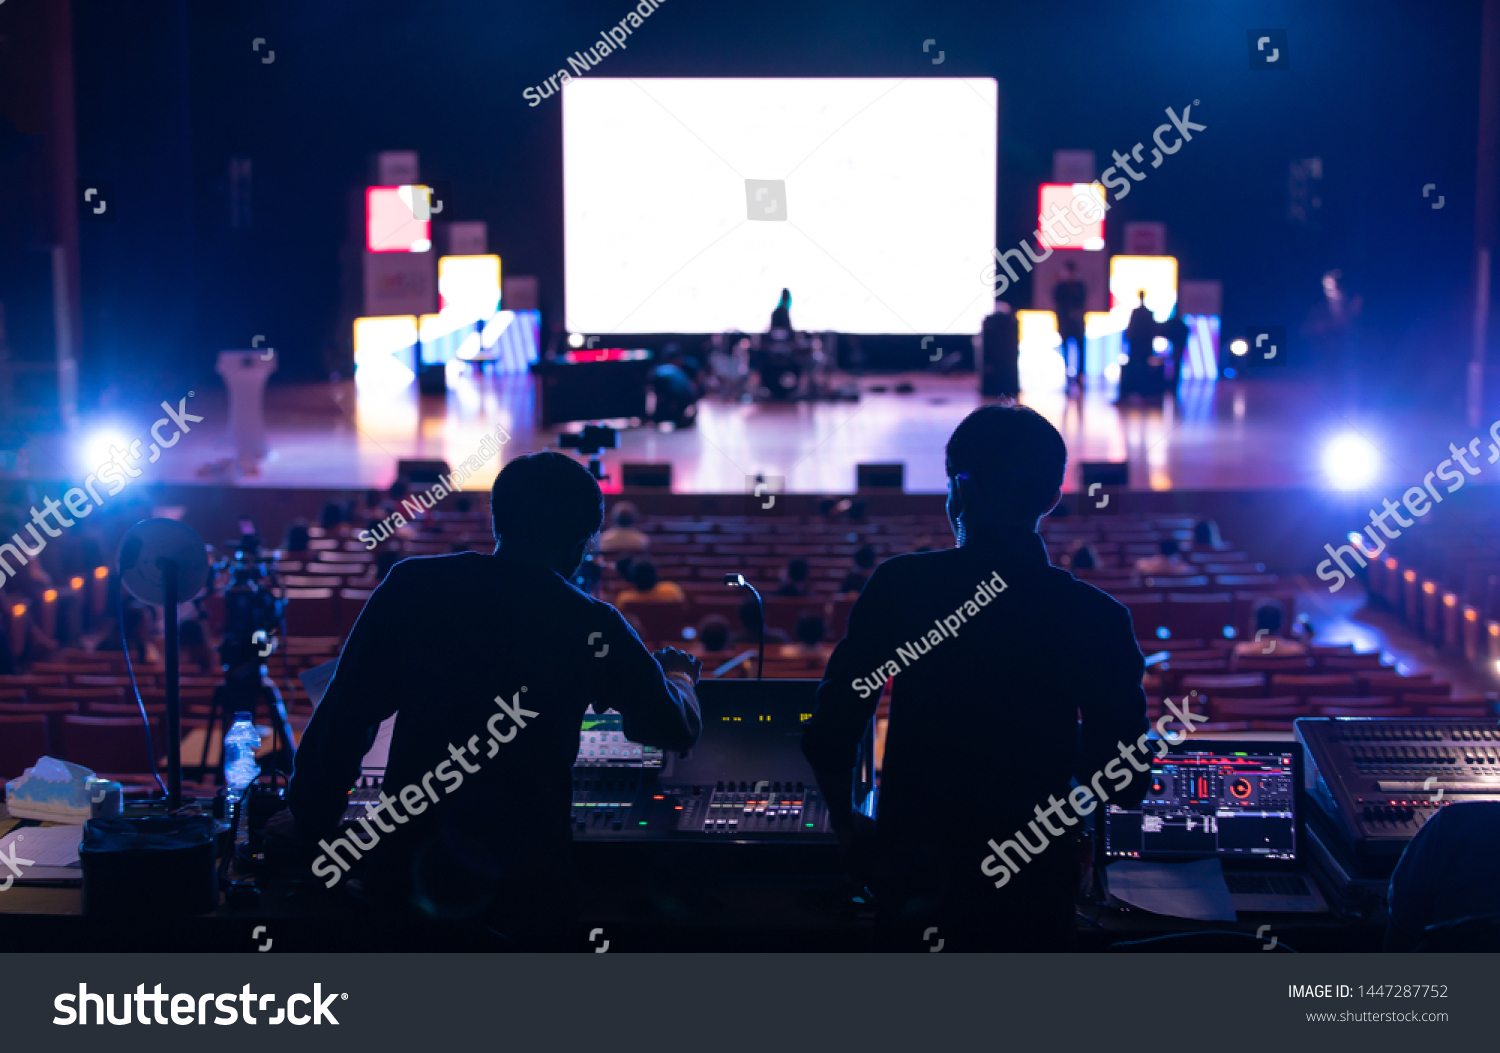 Blur image of sound engineer backstage crew team working to setting and preparing production for show events or music concert stage with blurry white screen in background. #1447287752